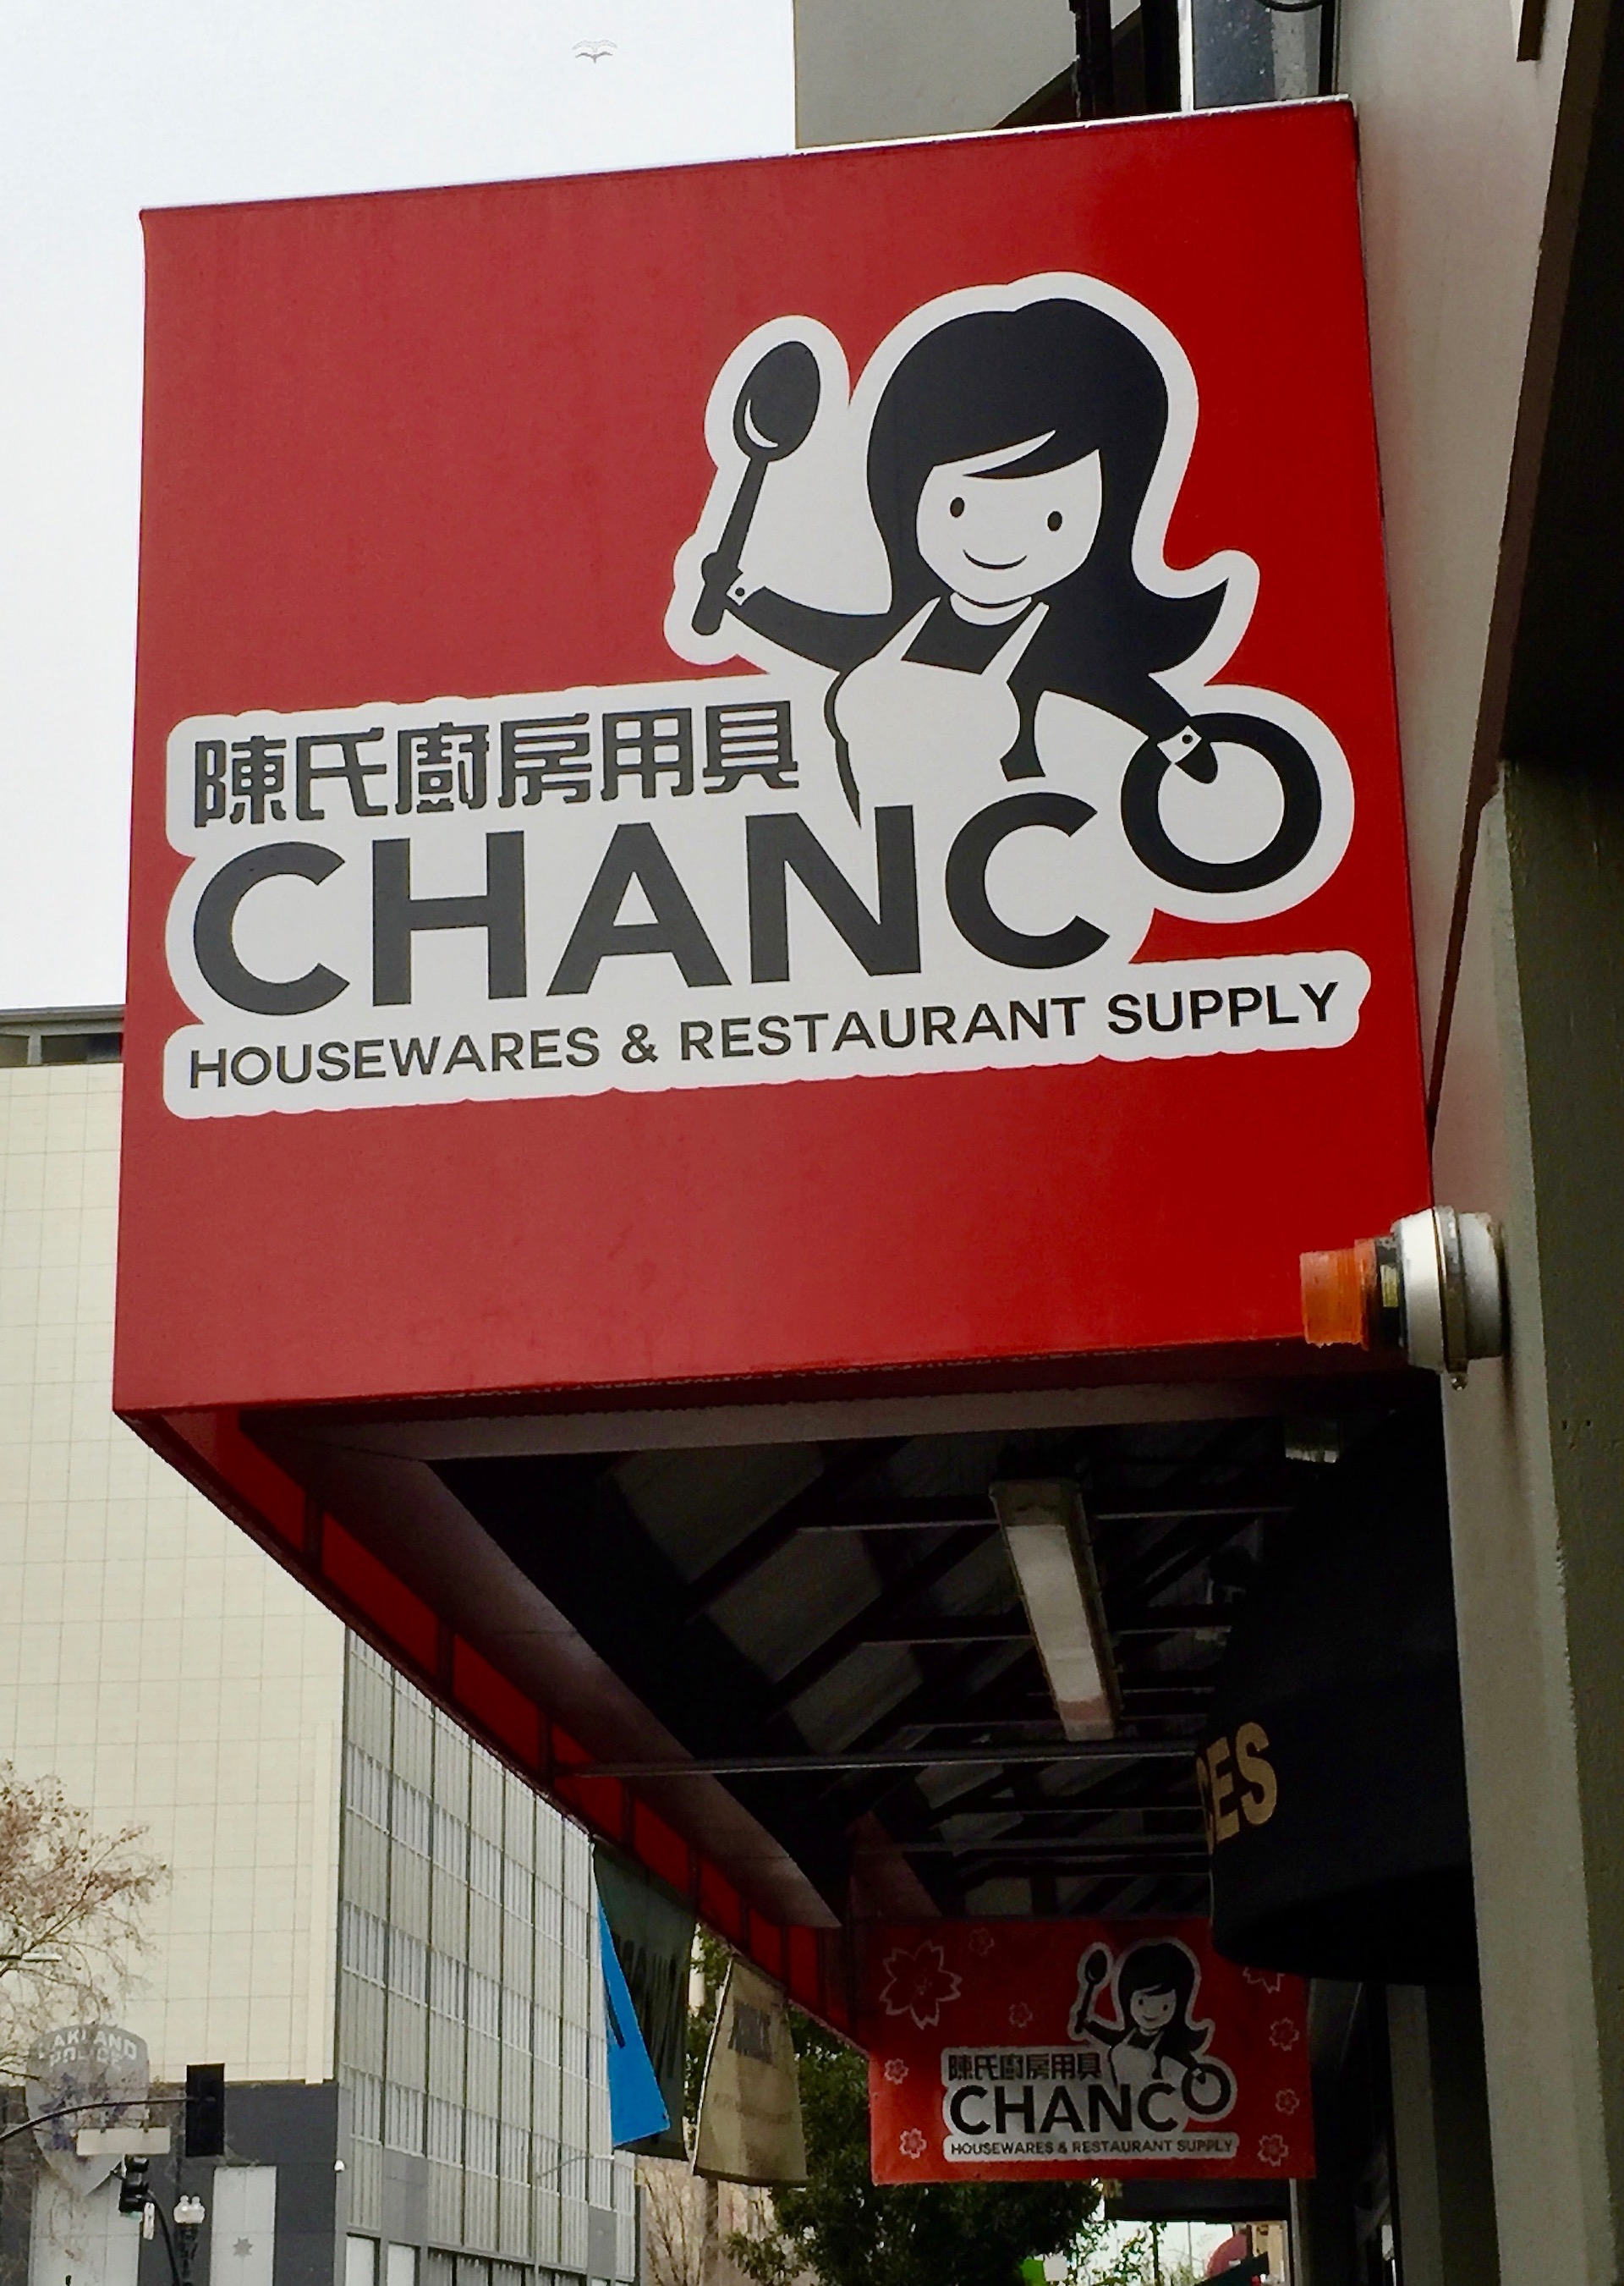 Chanco Housewares in Oakland Chinatown. Photo: Anna Mindess